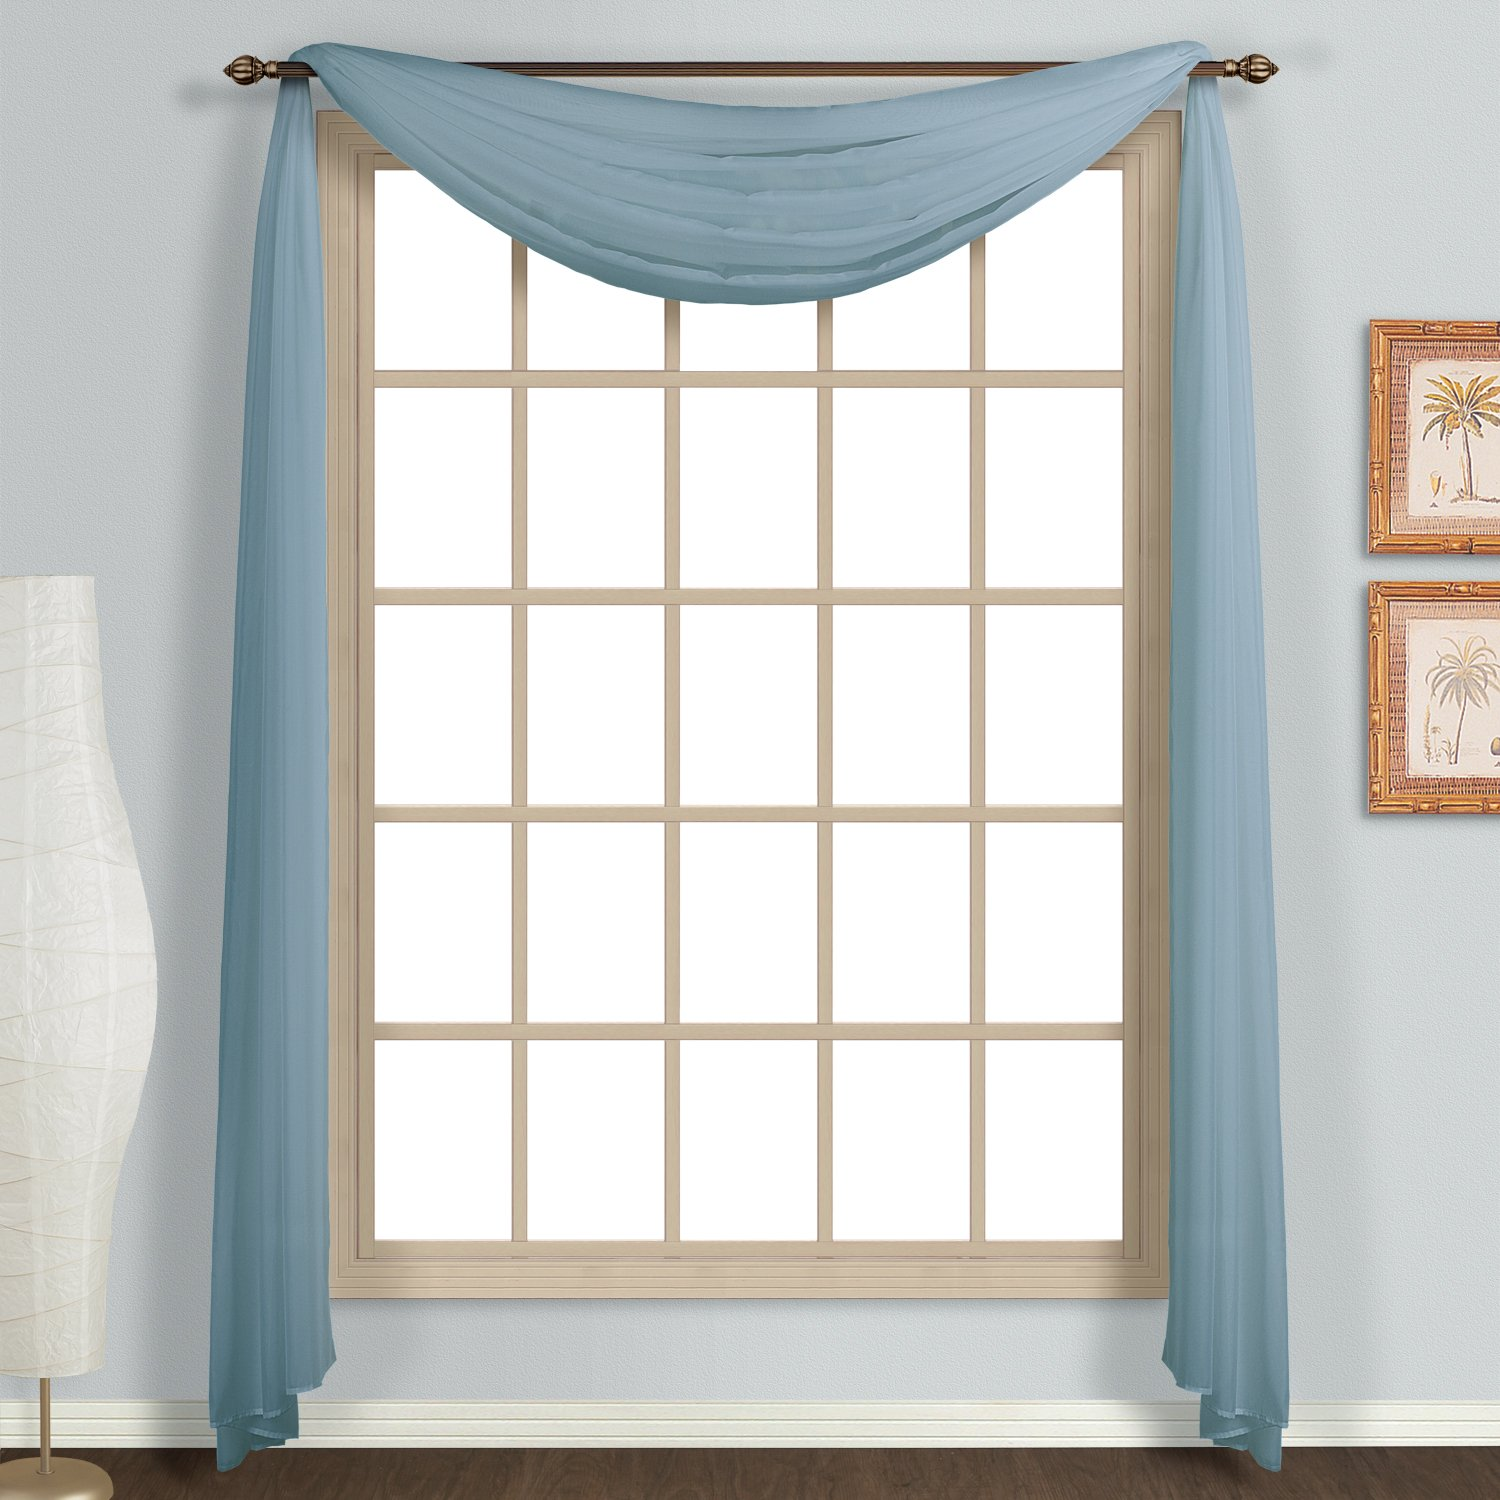 leaf sheer door curtain me ideas drape tulle latest esraloves treatment treatments window scarf panel valance valances